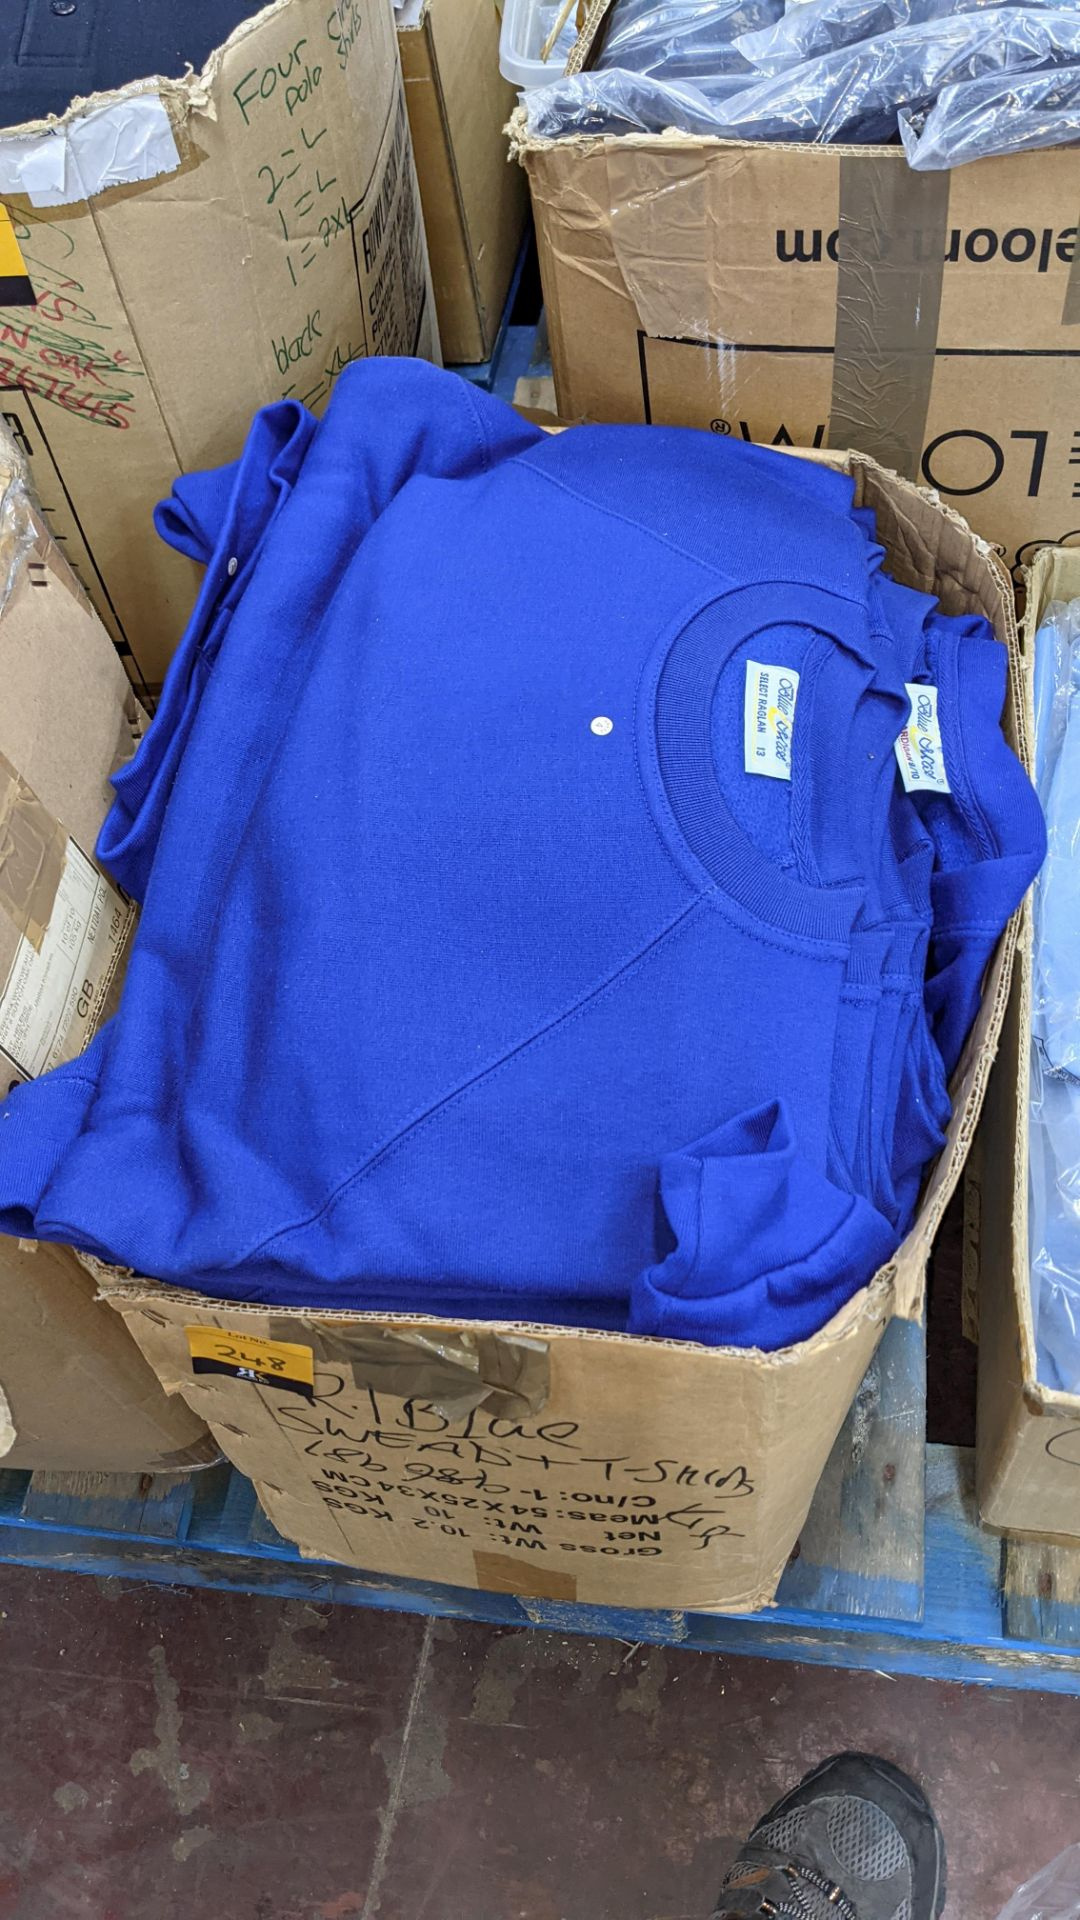 Approx 24 off mixed children's t-shirts, jumpers & cardigans - Image 5 of 5